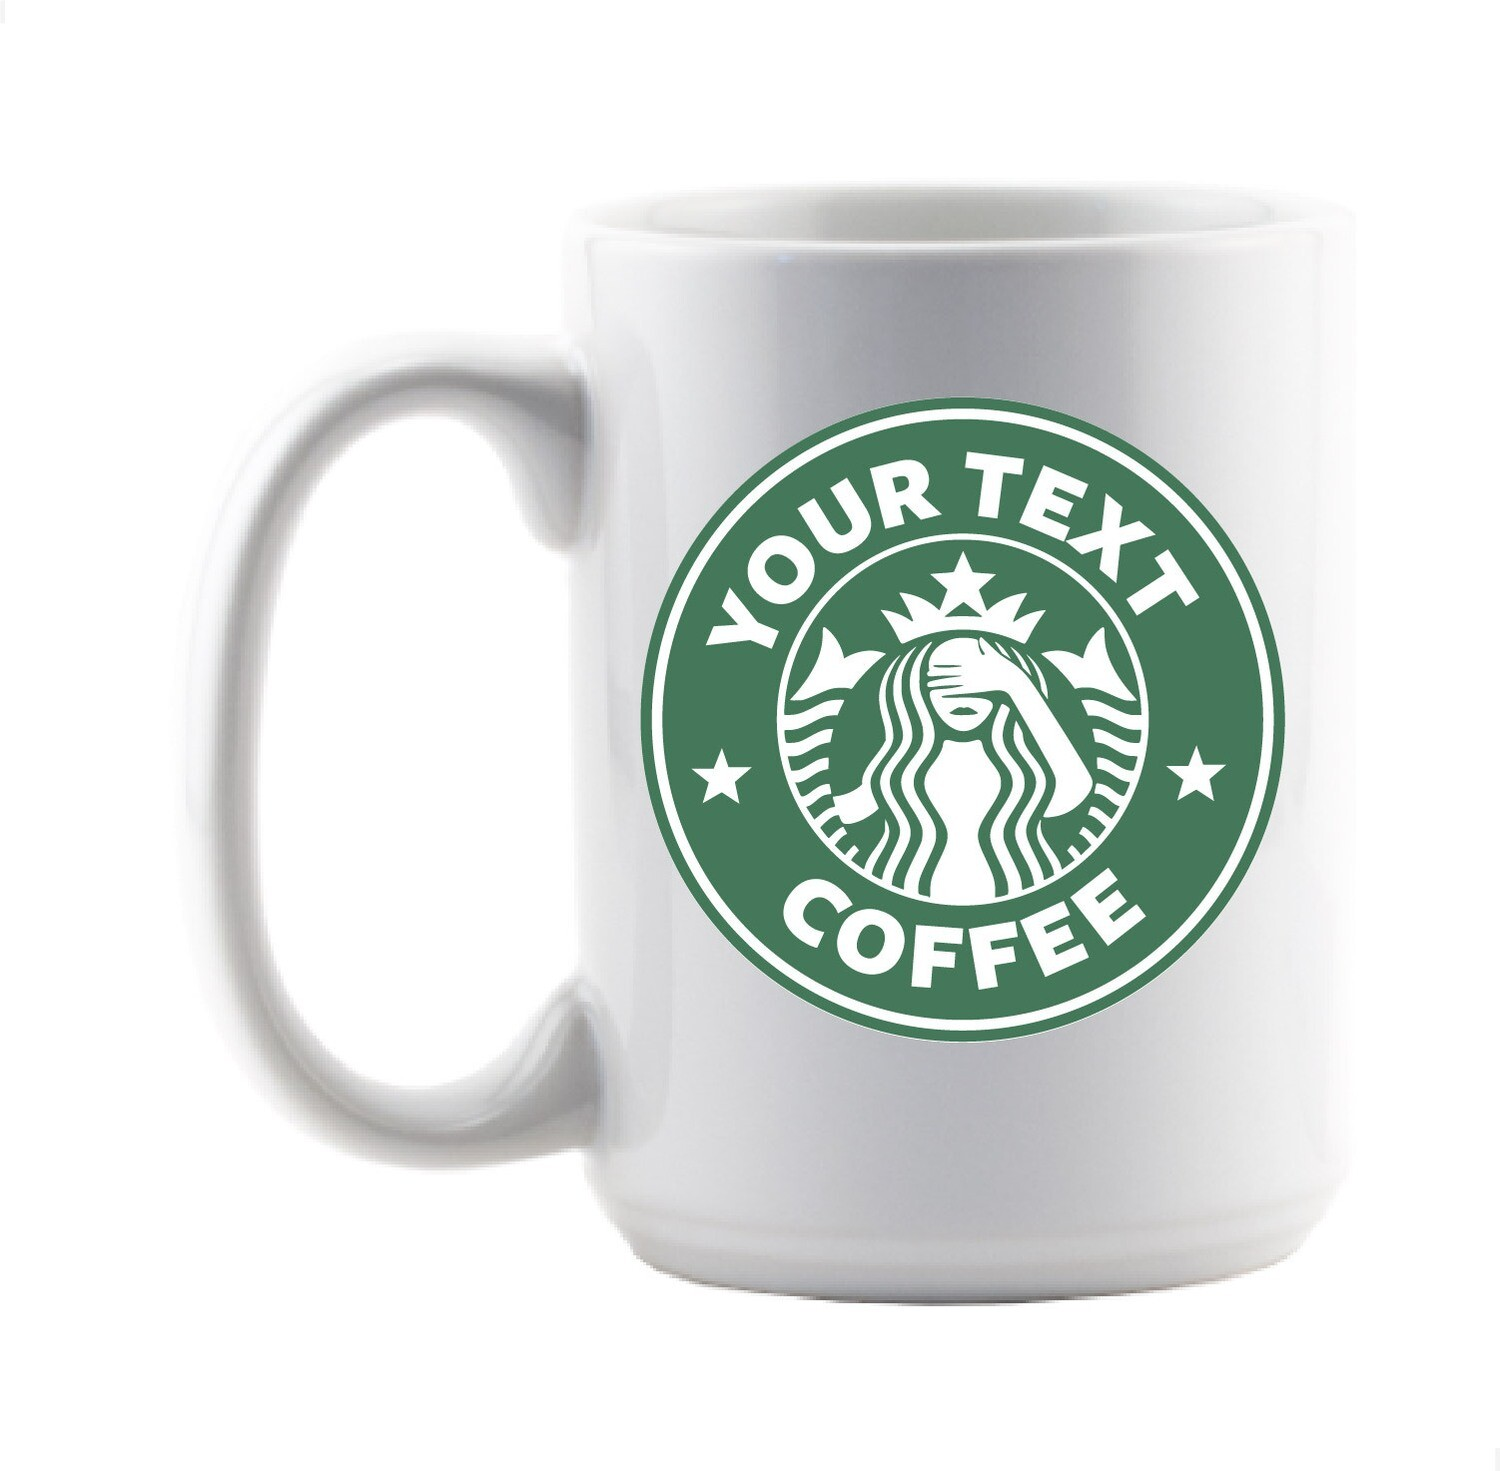 Starbucks Inspired Ceramic Mug - Personalized